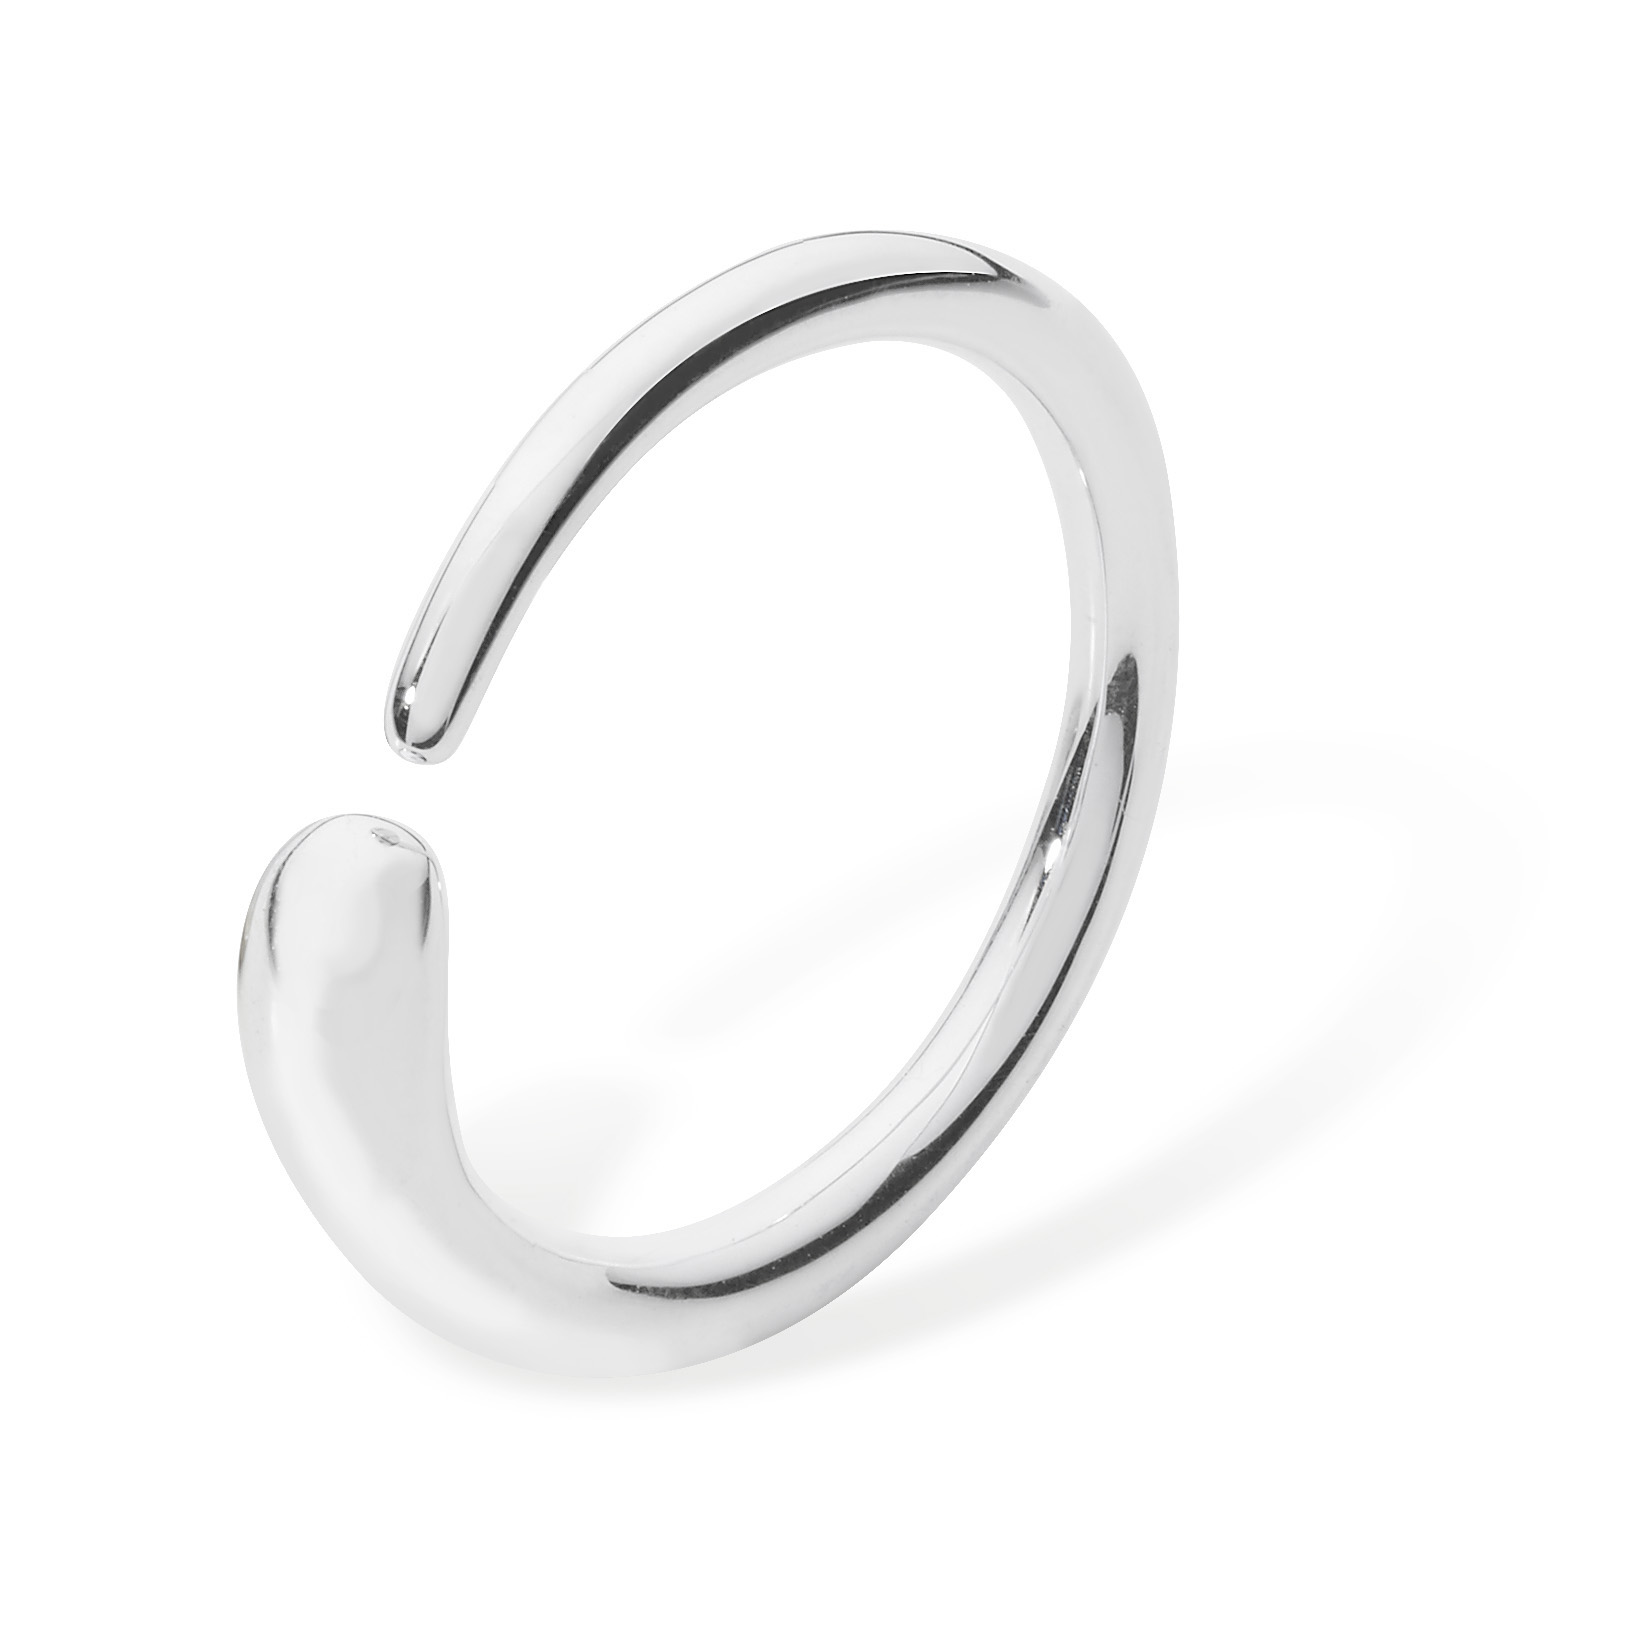 Lucy Q Single Drip Ring